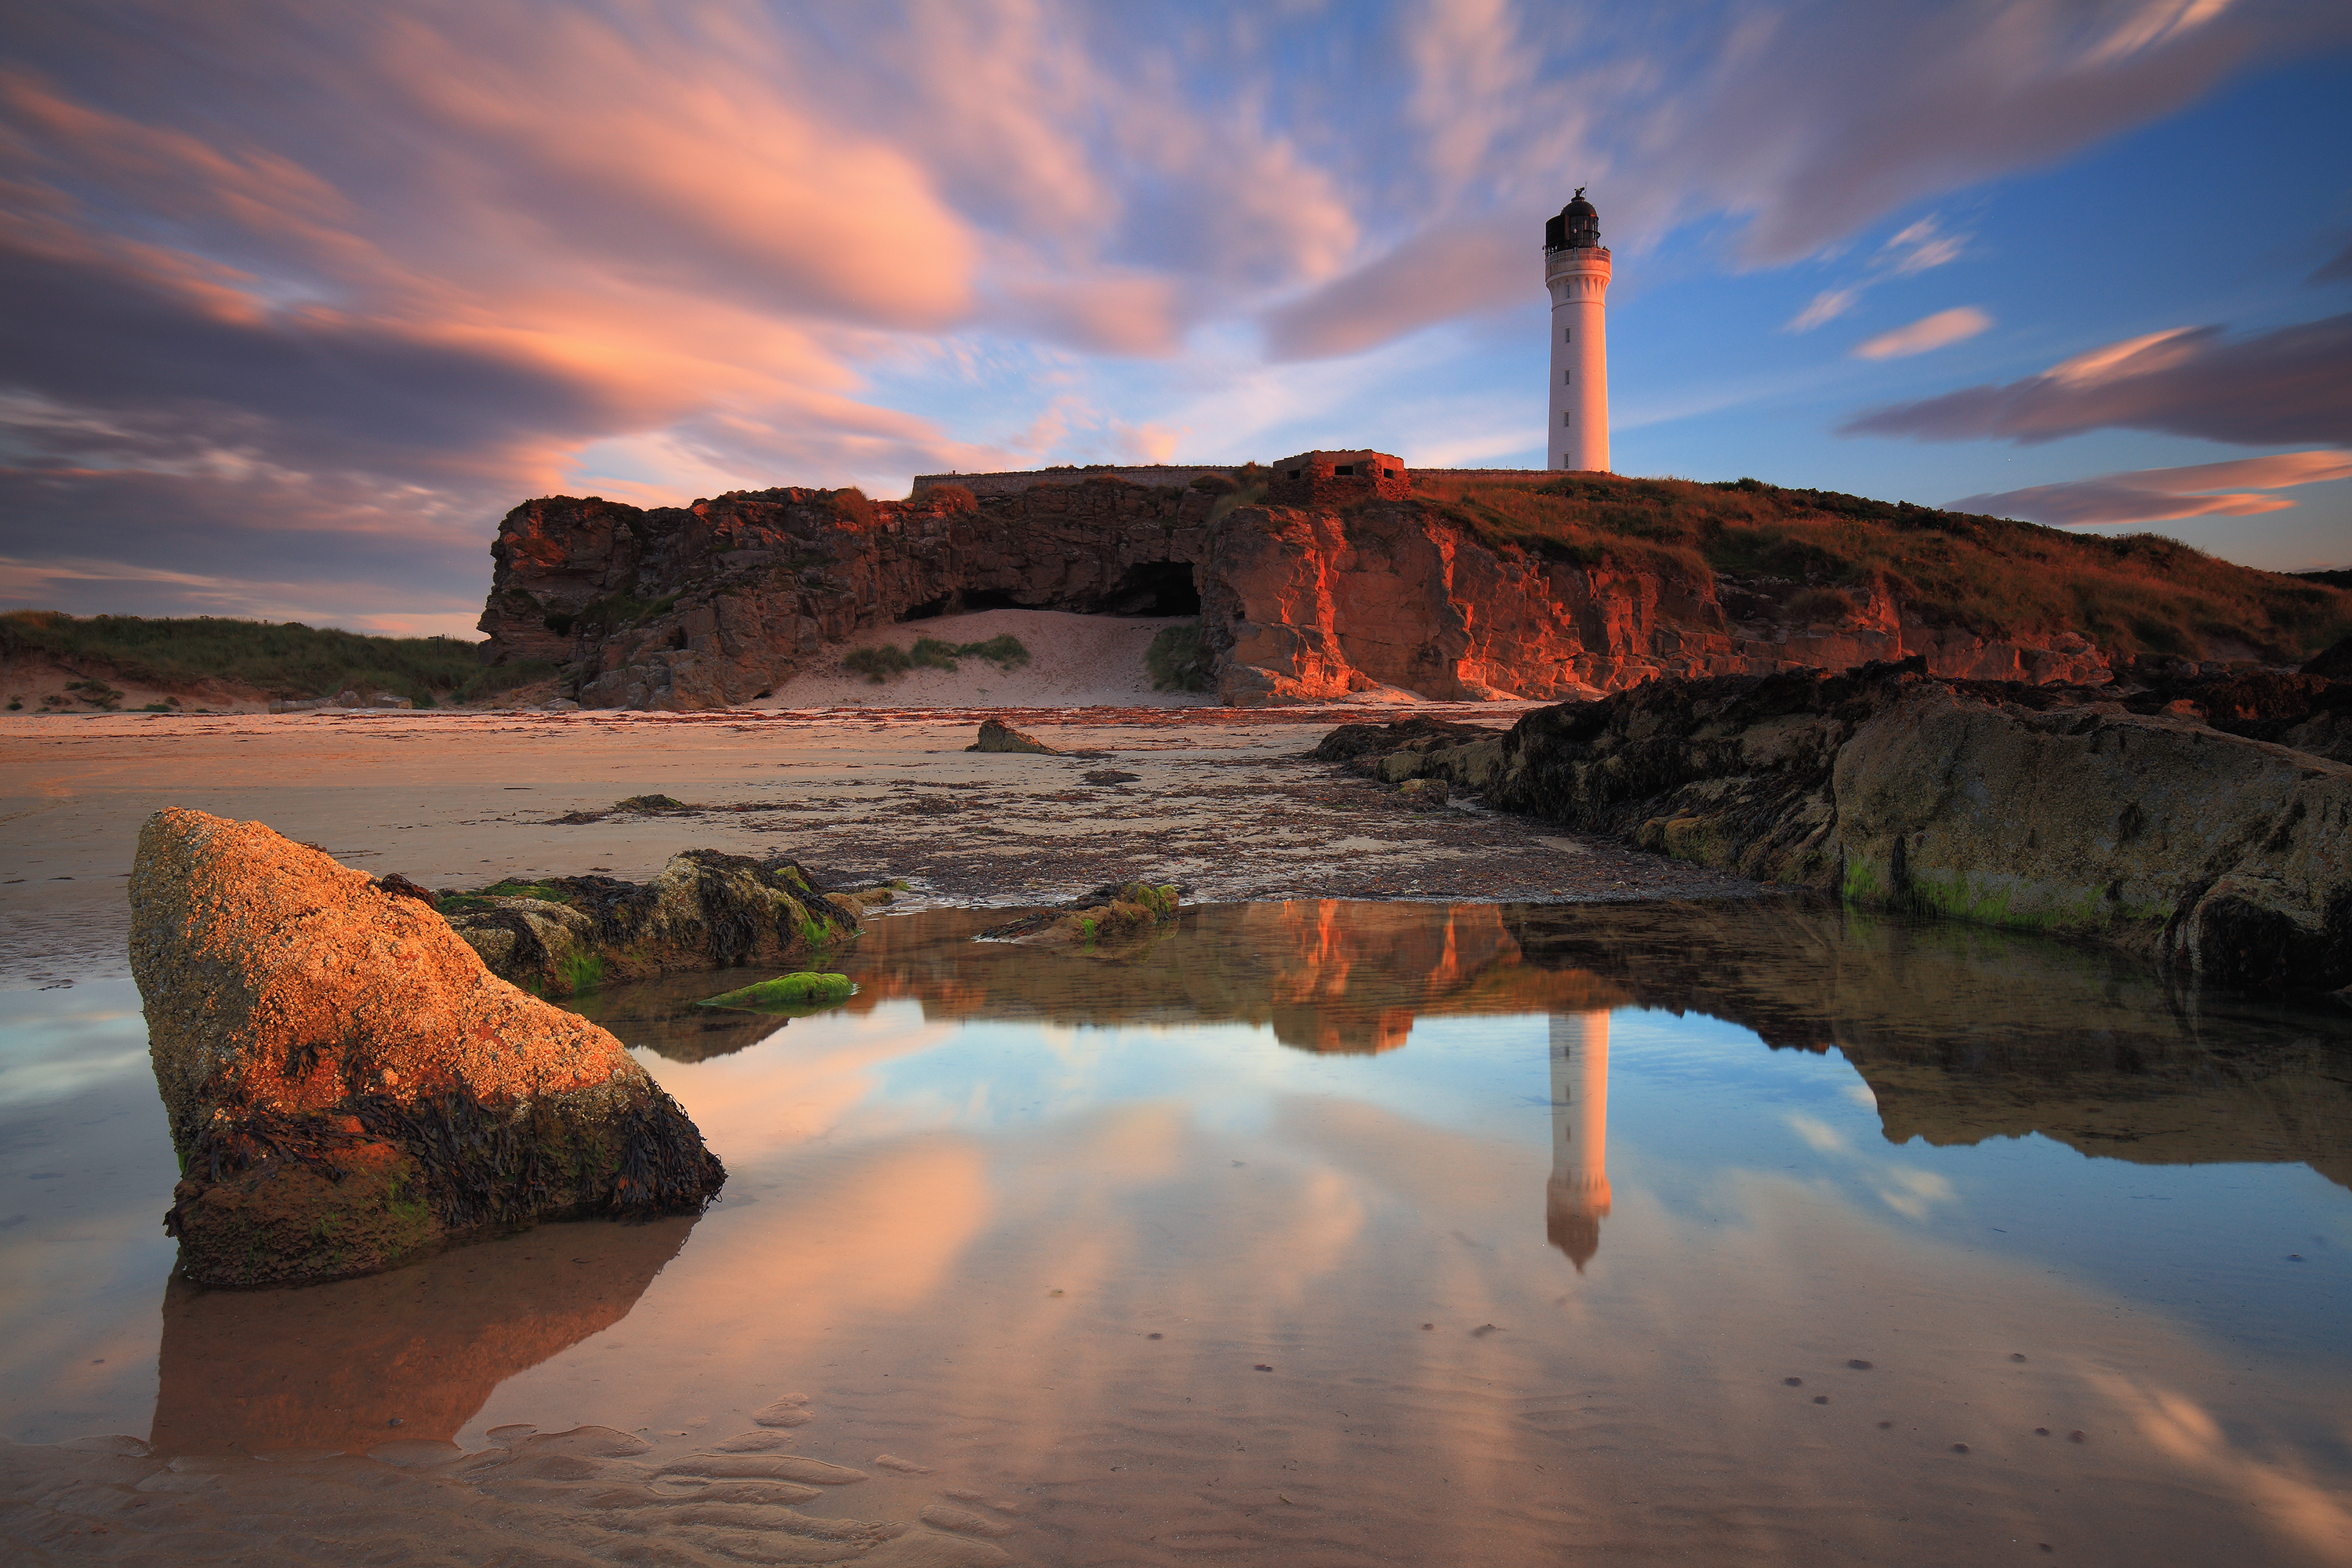 Amazing sunset over the Lossiemouth lighthouse in Moray.